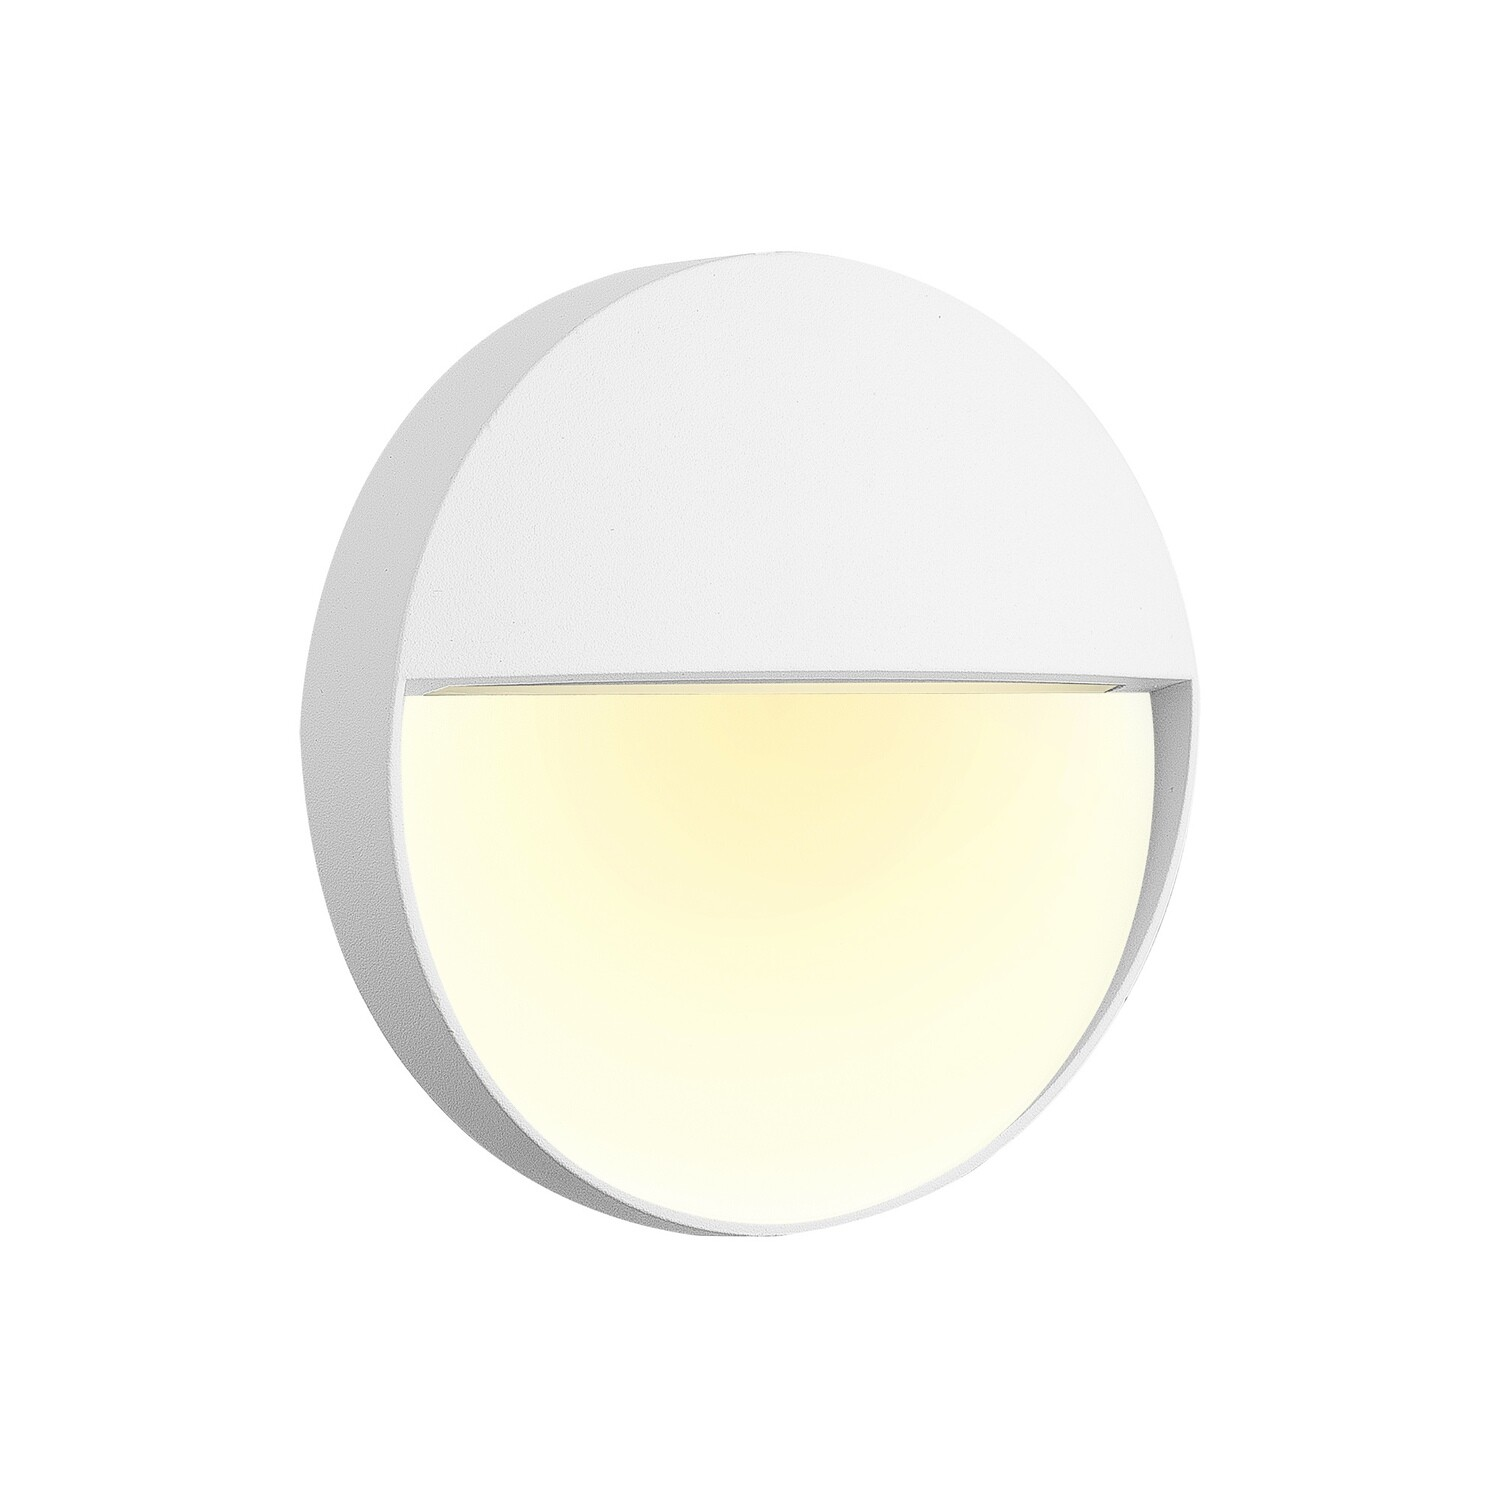 Baker Wall Lamp Small Round, 3W LED, 3000K, 150lm, IP54, White